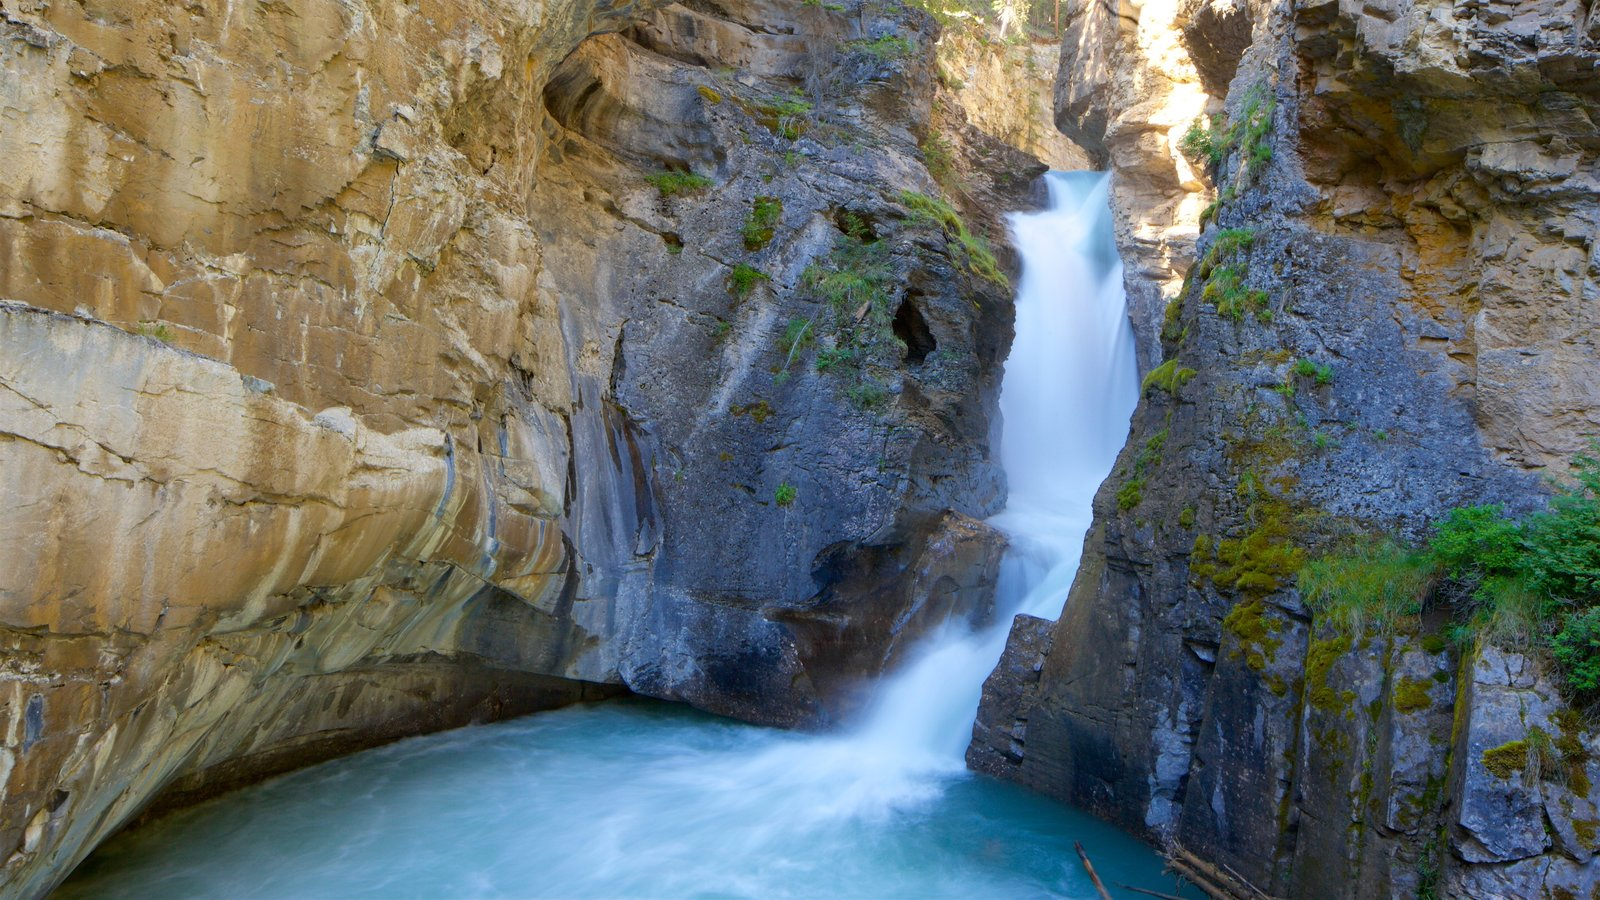 Johnston Canyon which includes a river or creek and a gorge or canyon